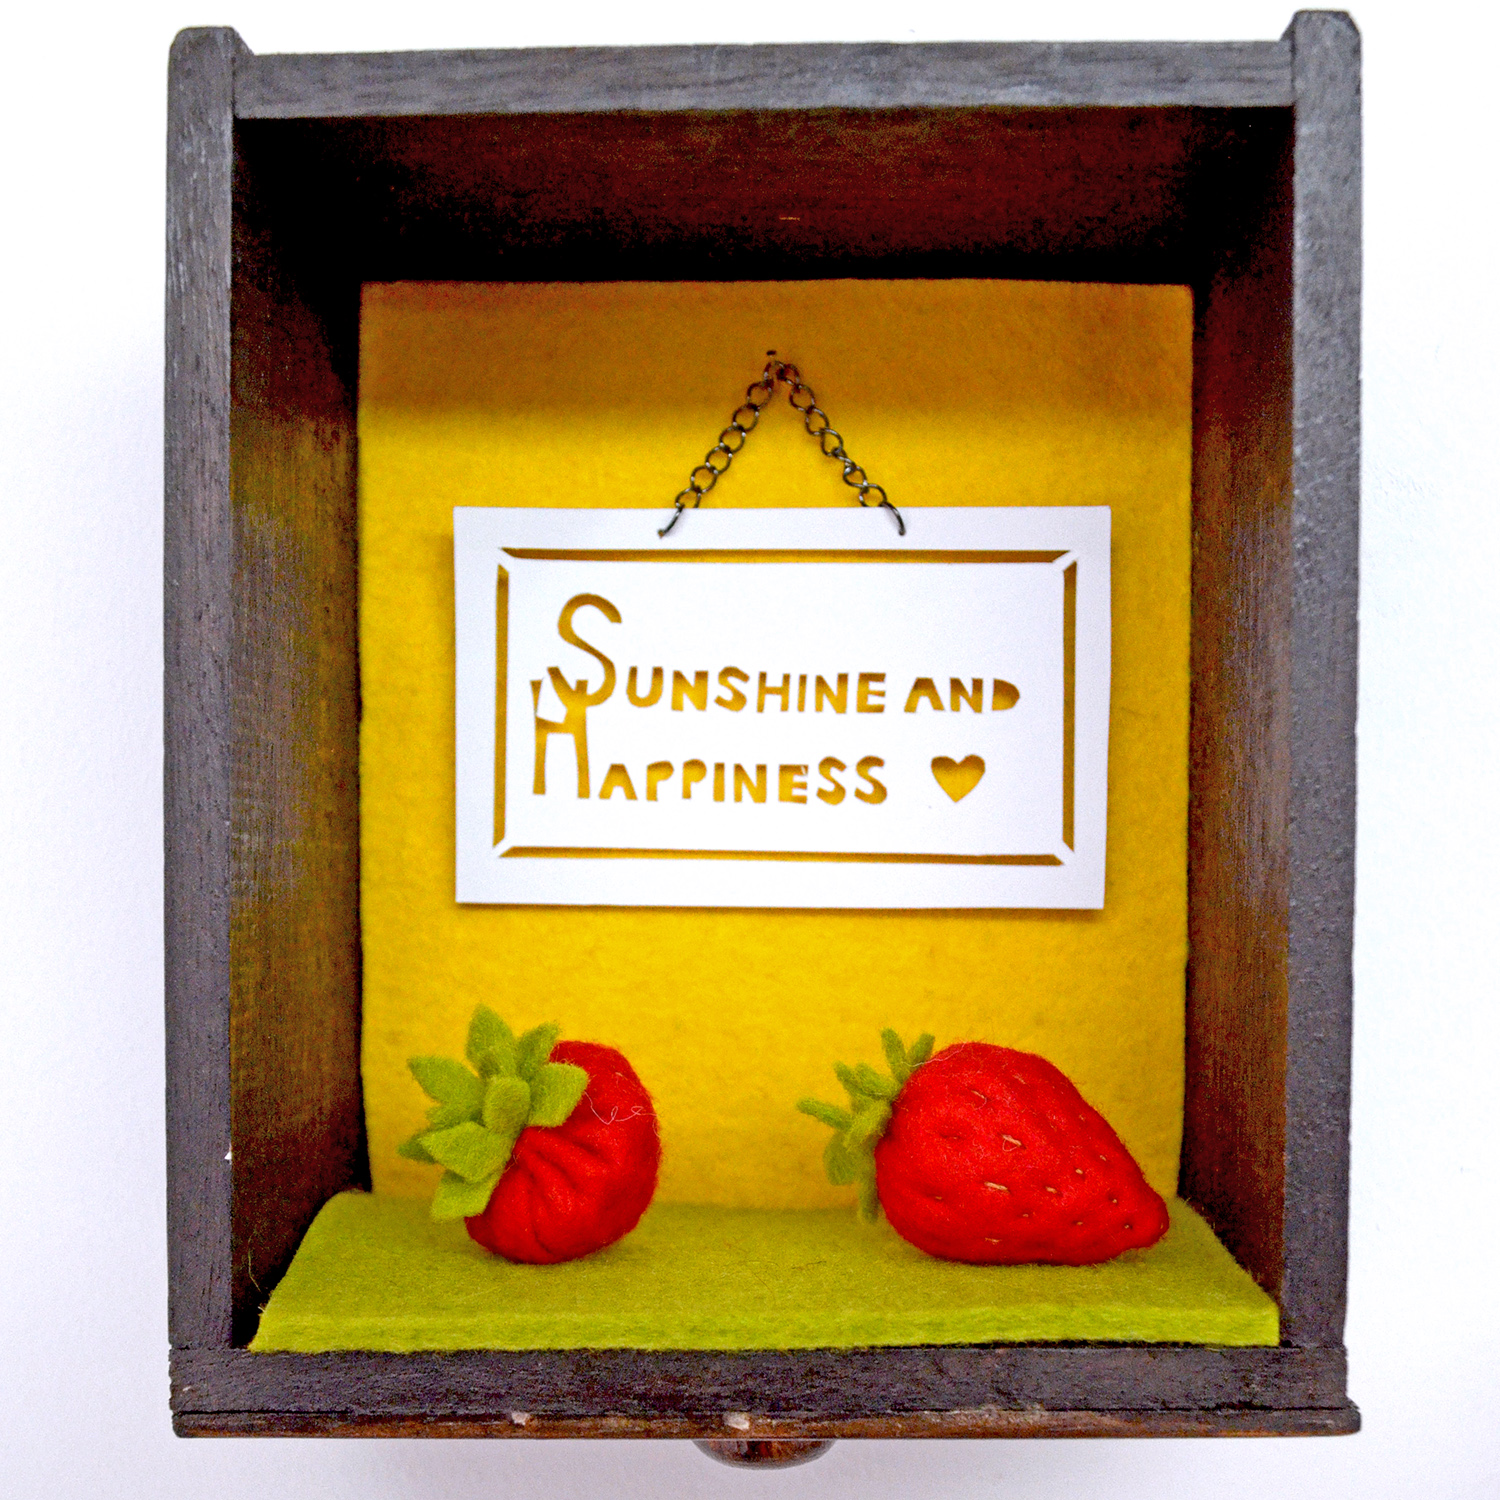 Play food felt strawberries by Laura Mirjami | Mirjami Design